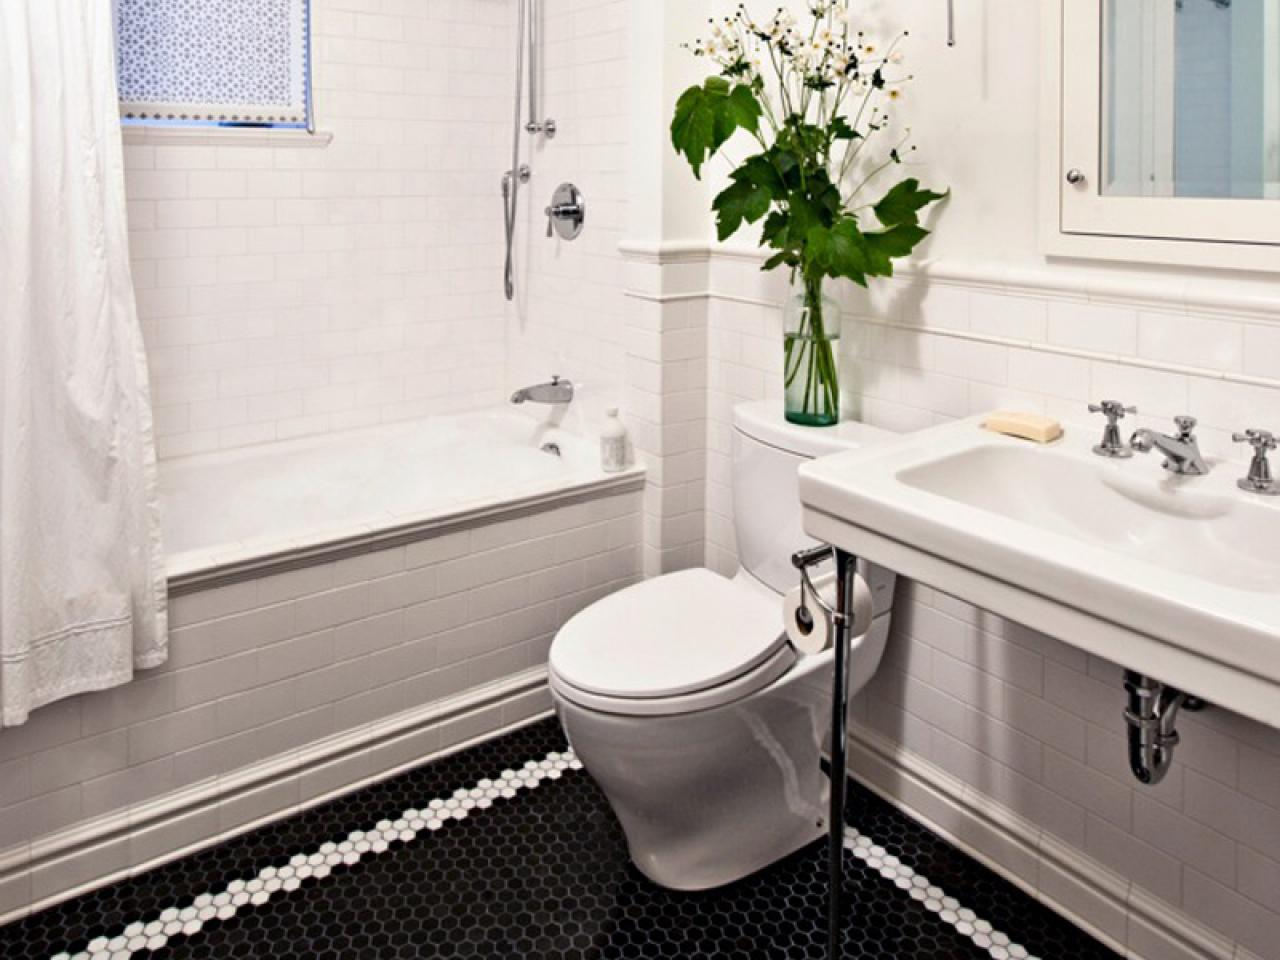 Original_Bathroom Tile Jessica Helgerson Black White Tile_s4x3. ...